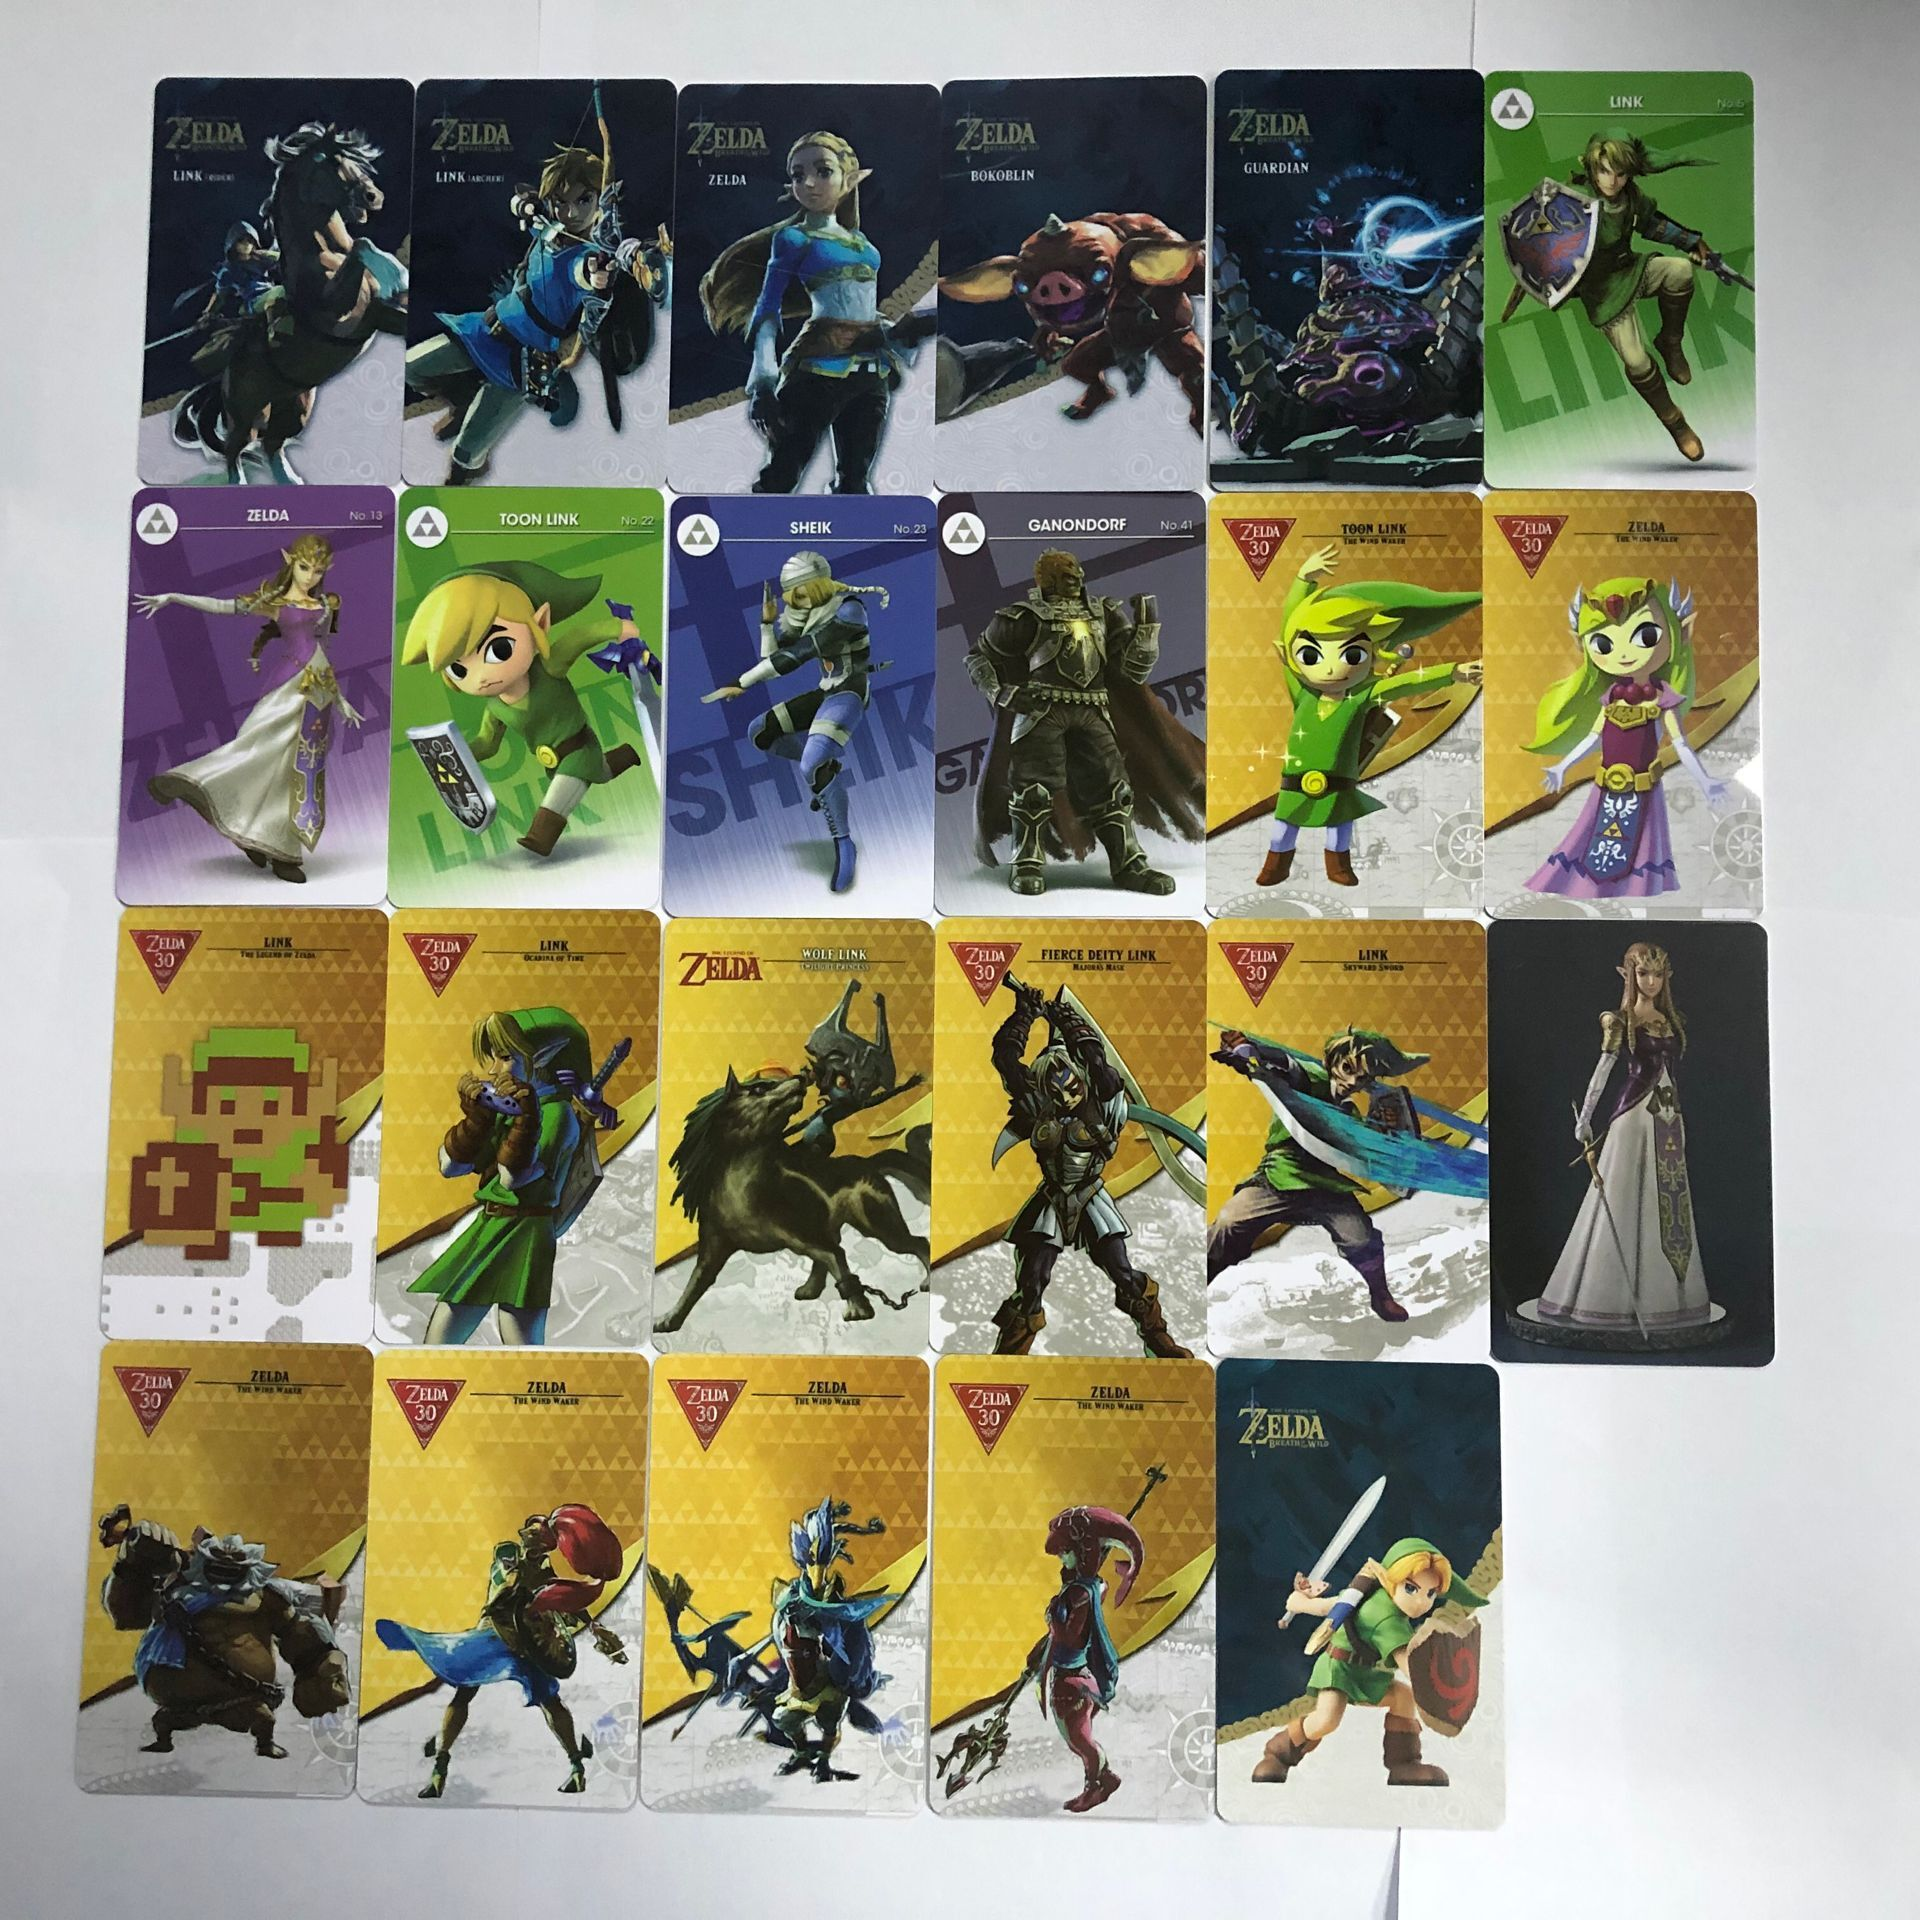 NFC Game Cards For NIntendo Switch For The Legend Of Zelda BotW Special Gift 24pcs/set